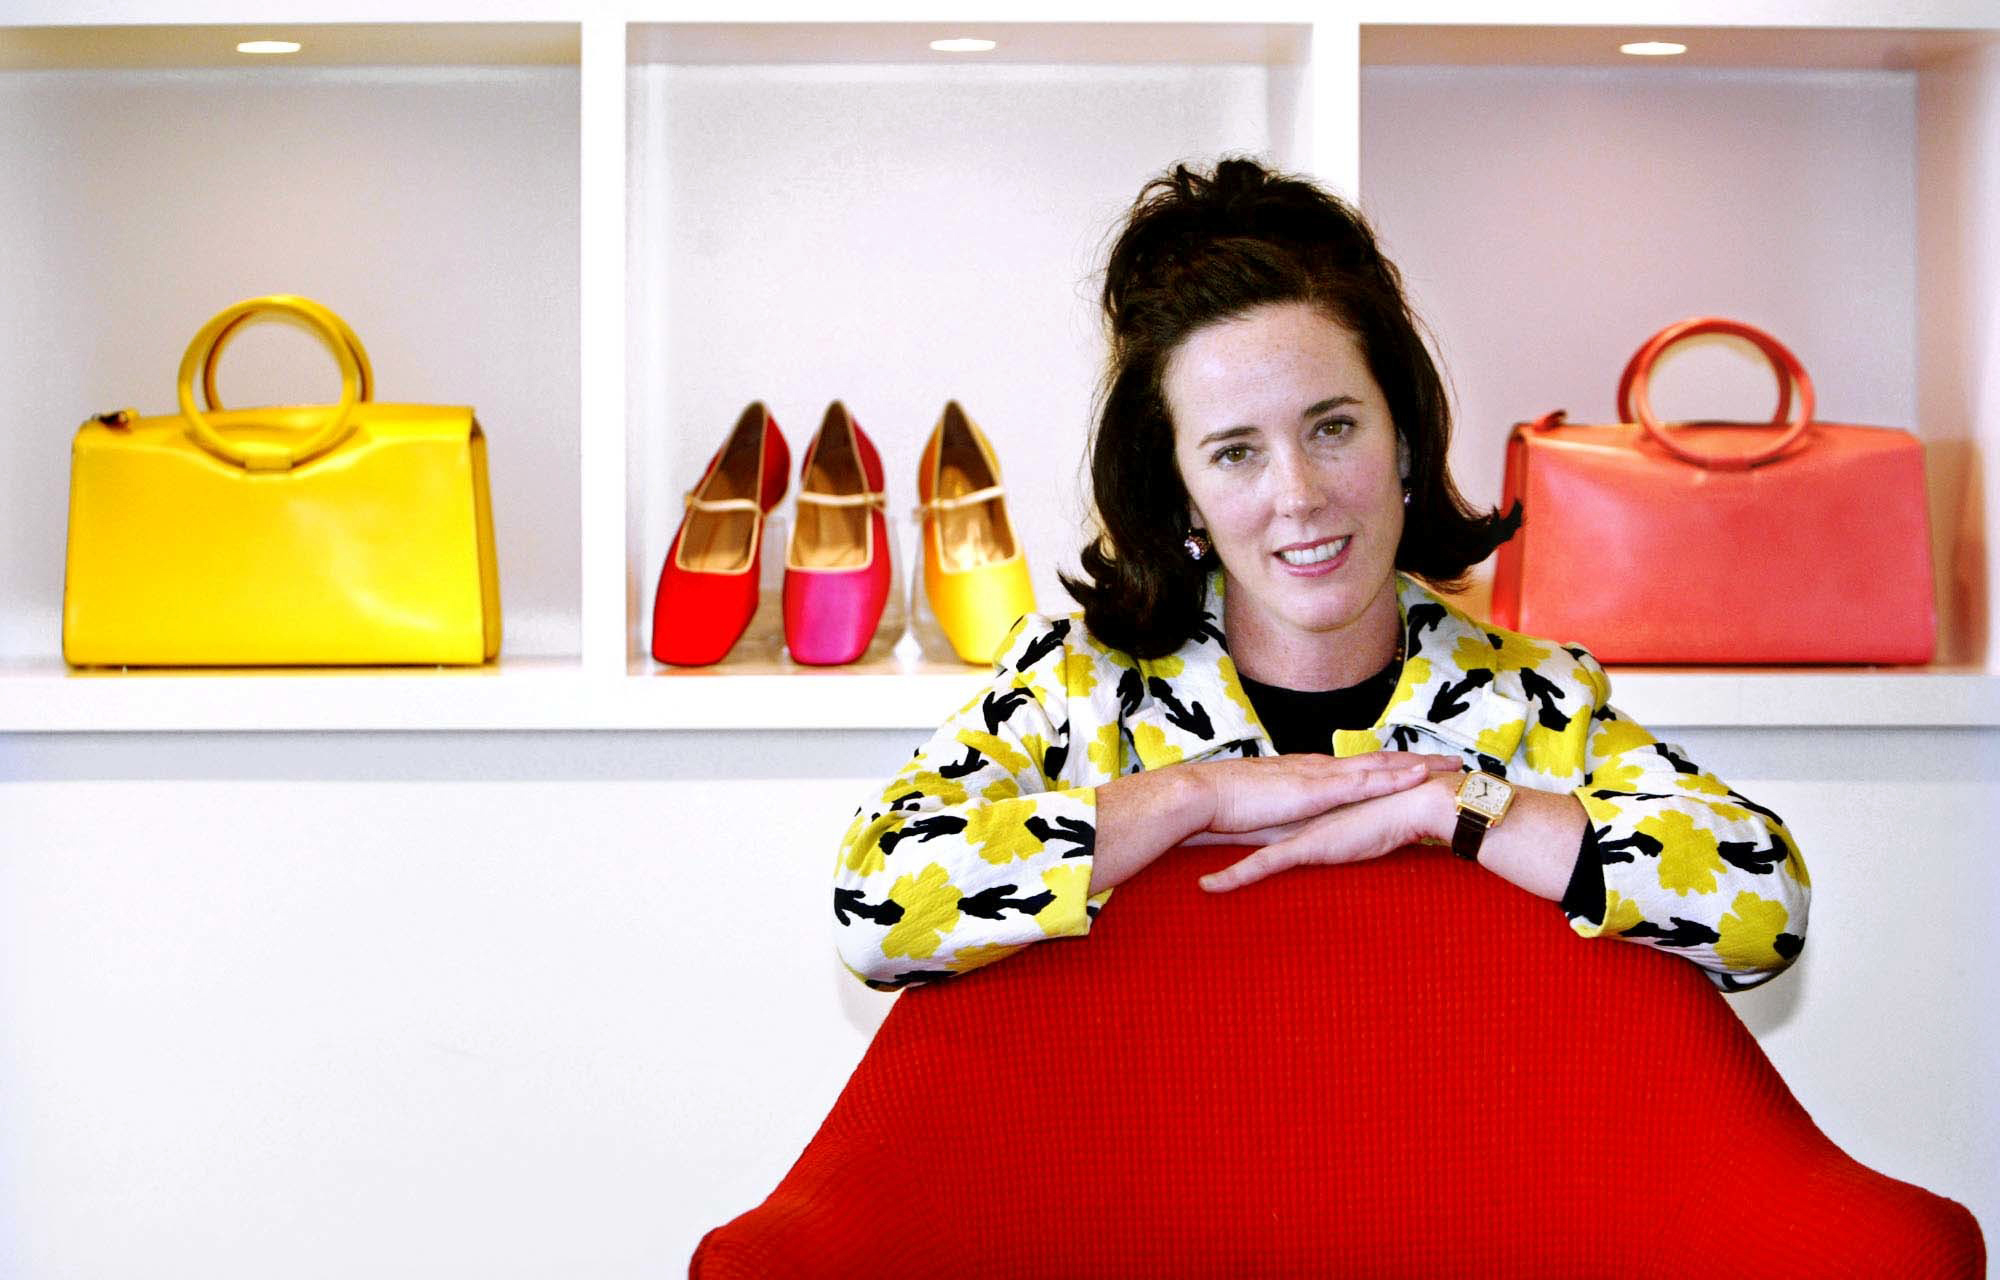 "<div class=""meta image-caption""><div class=""origin-logo origin-image none""><span>none</span></div><span class=""caption-text"">Kate Spade poses with handbags and shoes from her next collection in New York in 2004. (AP Photo/Bebeto Matthews, File)</span></div>"